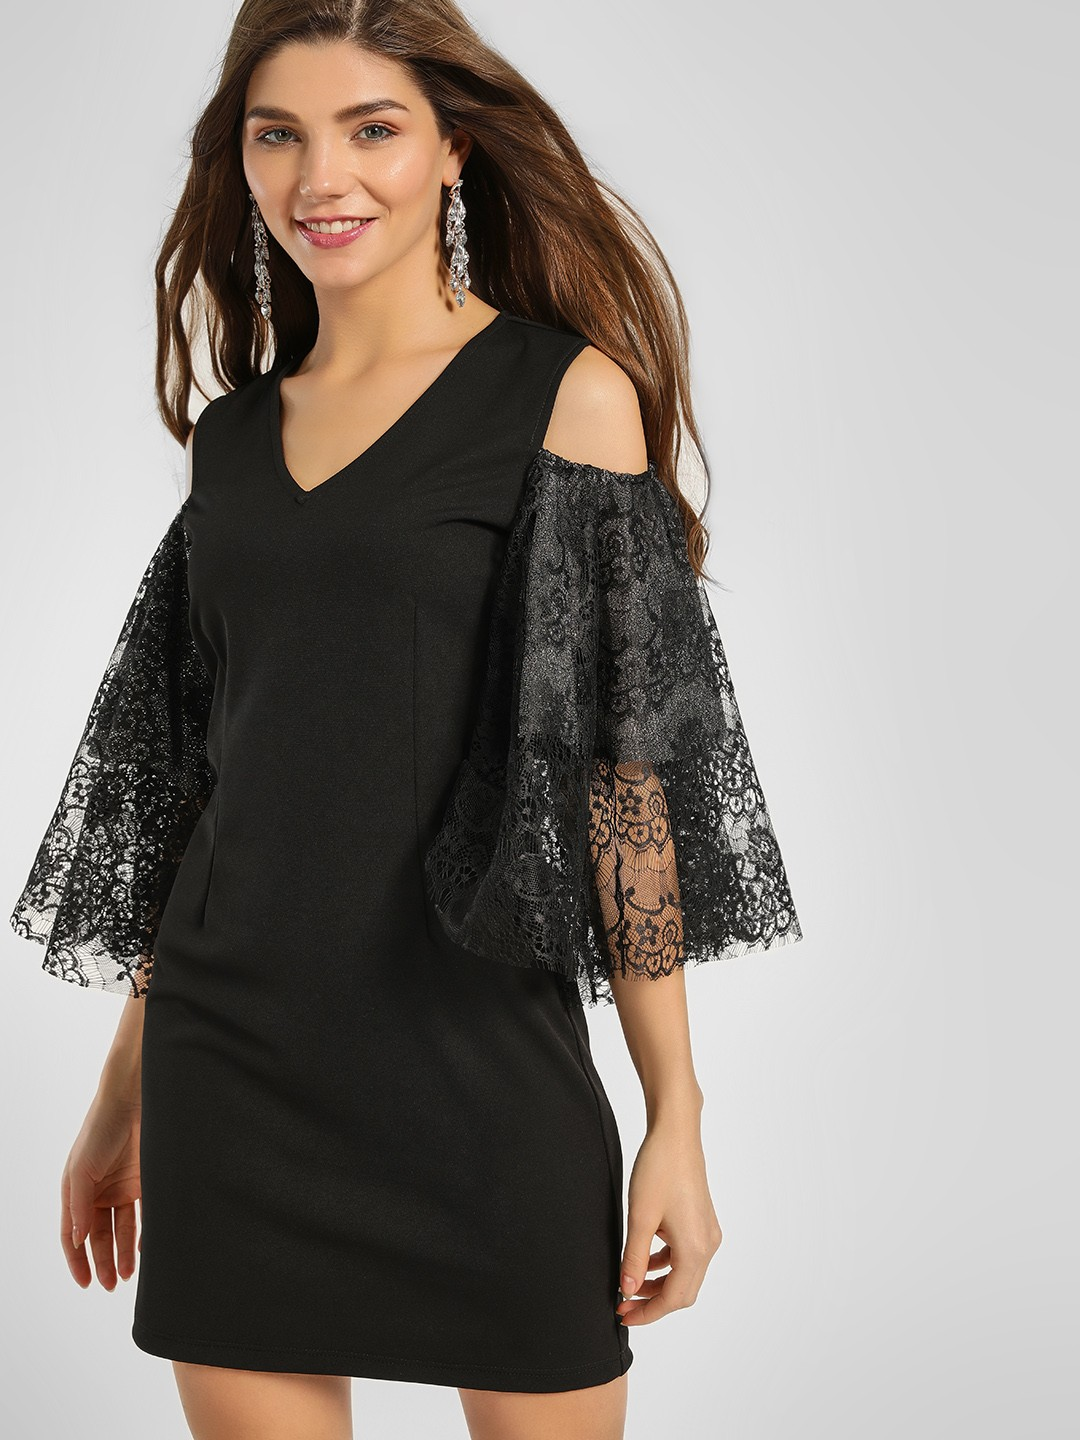 Ri-Dress Black Lace Flared Sleeve Shift Dress 1